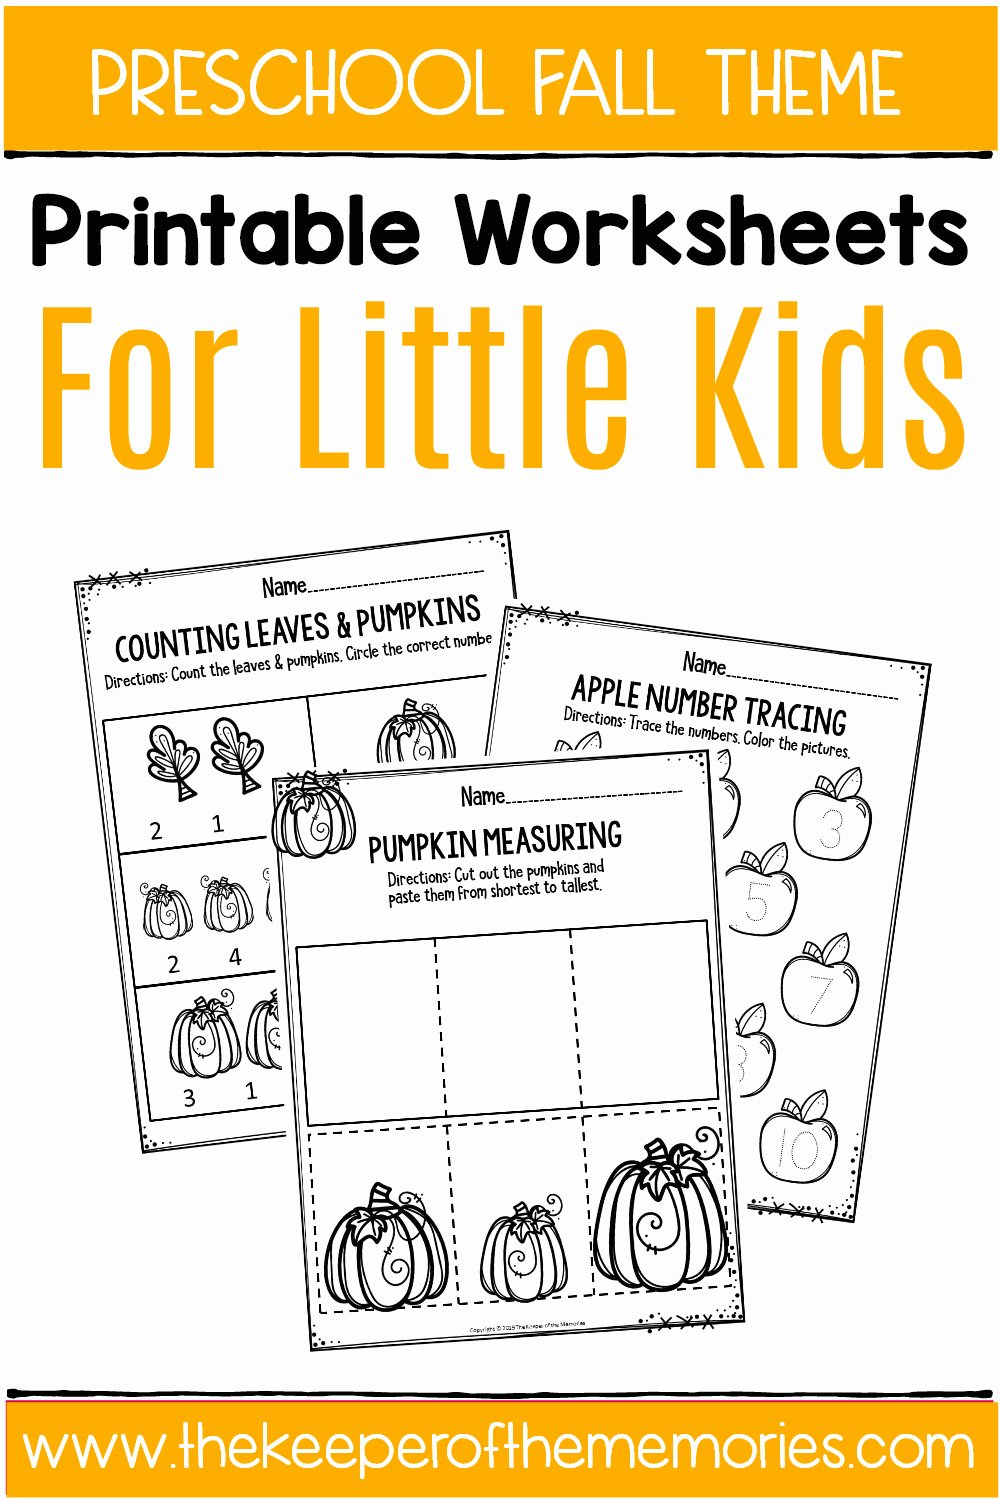 Fall Worksheets for Preschoolers Inspirational Fall Printable Preschool Worksheets the Keeper Of the Memories